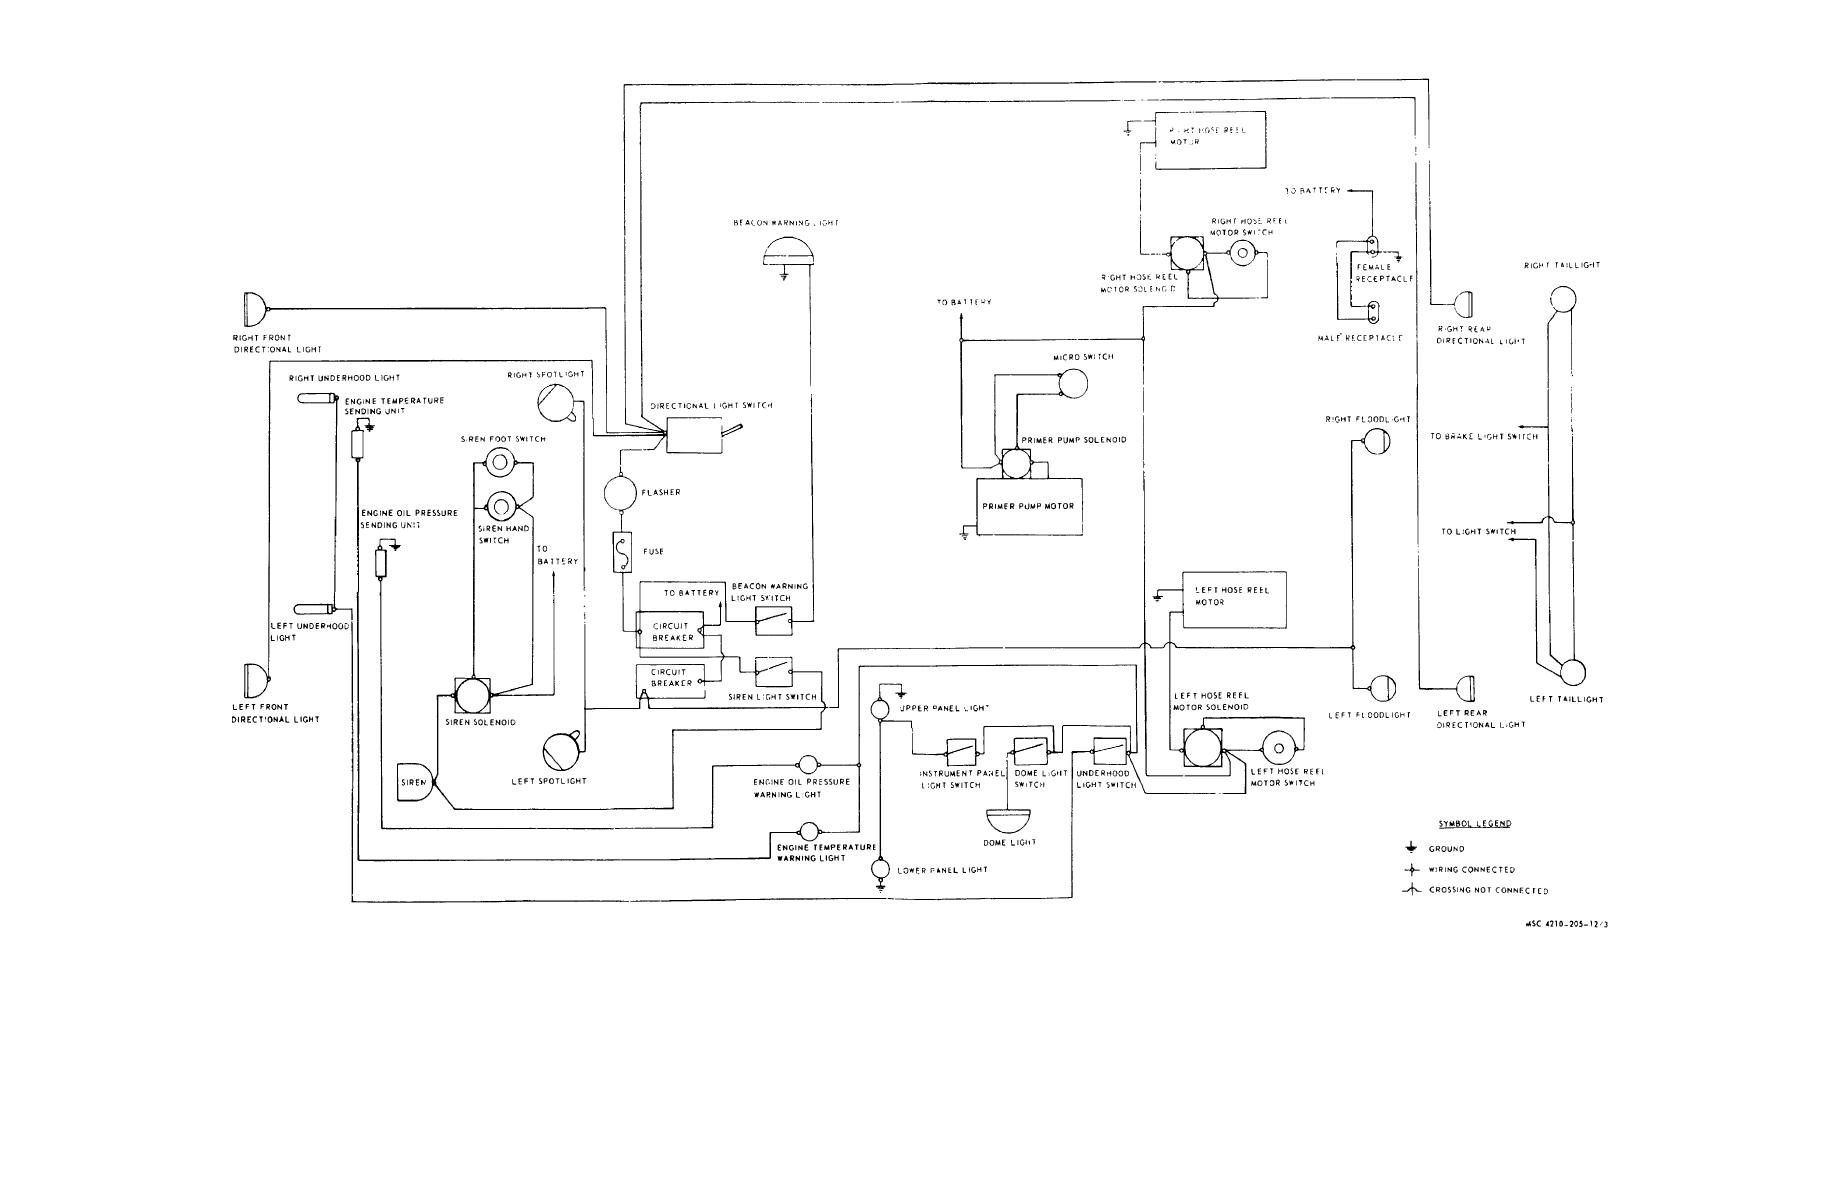 Fire Pump Wiring Diagram Mastering Art Free Picture Schematic Engine Image For User Manual Download Controller